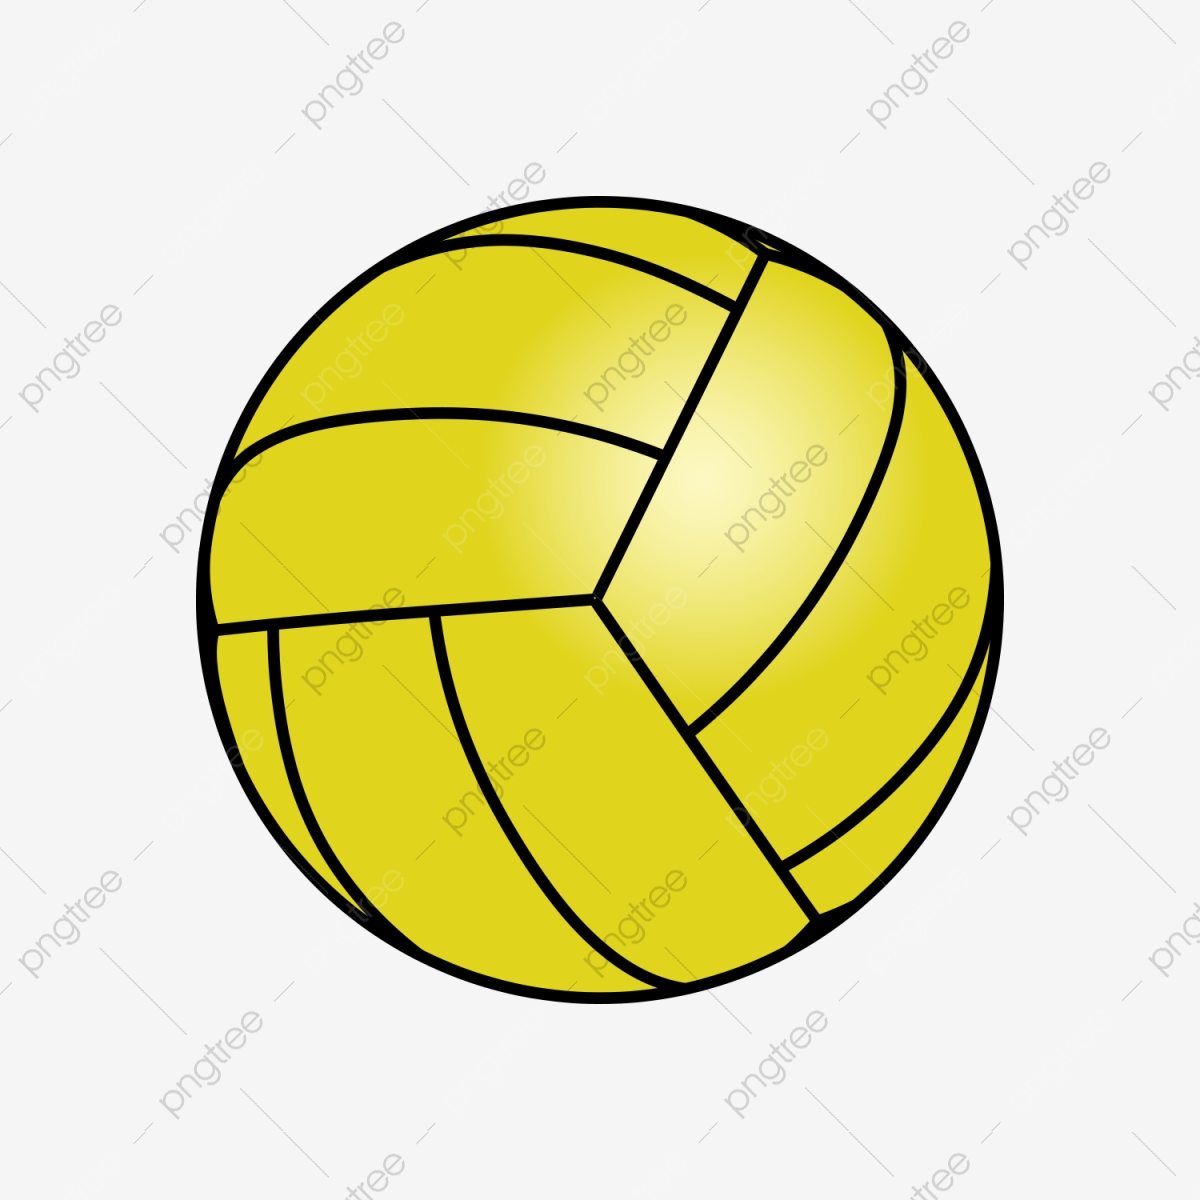 Volley Ball Vector Png Transparent Background Sports Balls Volley Ball Png Volley Ball Vector Png Transparent Clipart Image And Psd File For Free Download